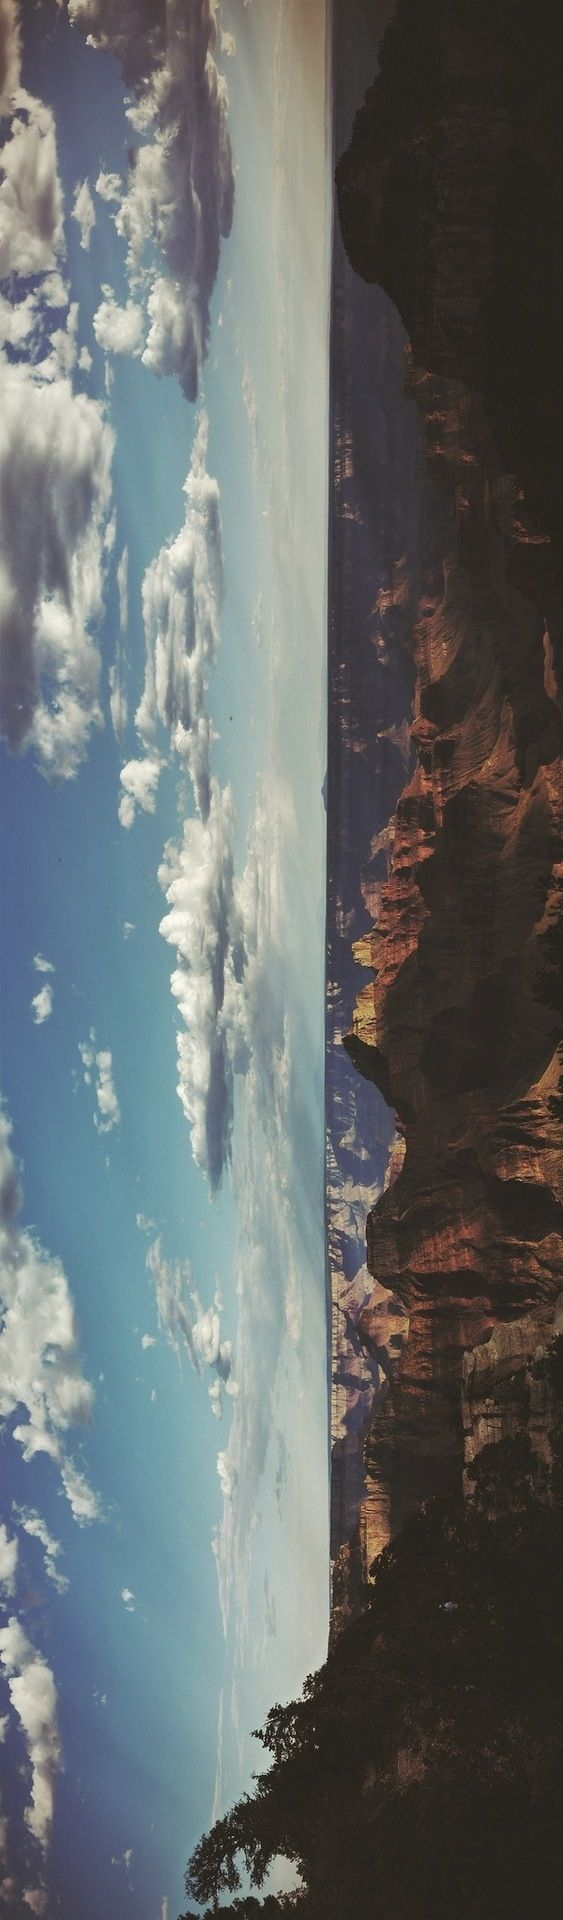 view from over the Grand Canyon! from tumblr